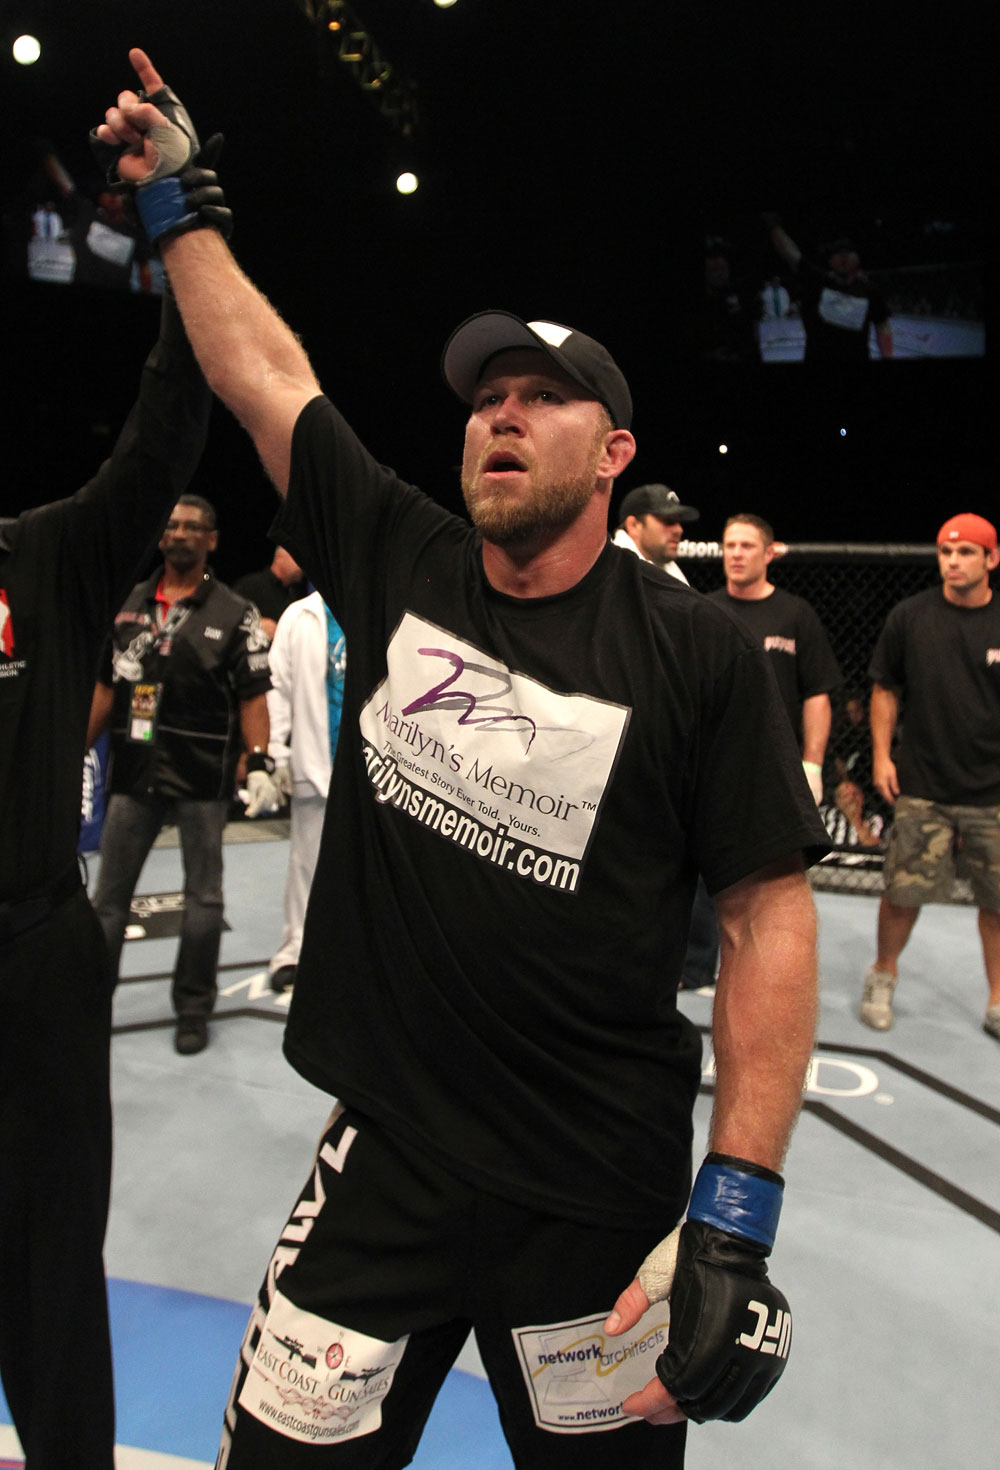 UFC 130: Tim Boetsch celebrates his win over Kendall Grove.